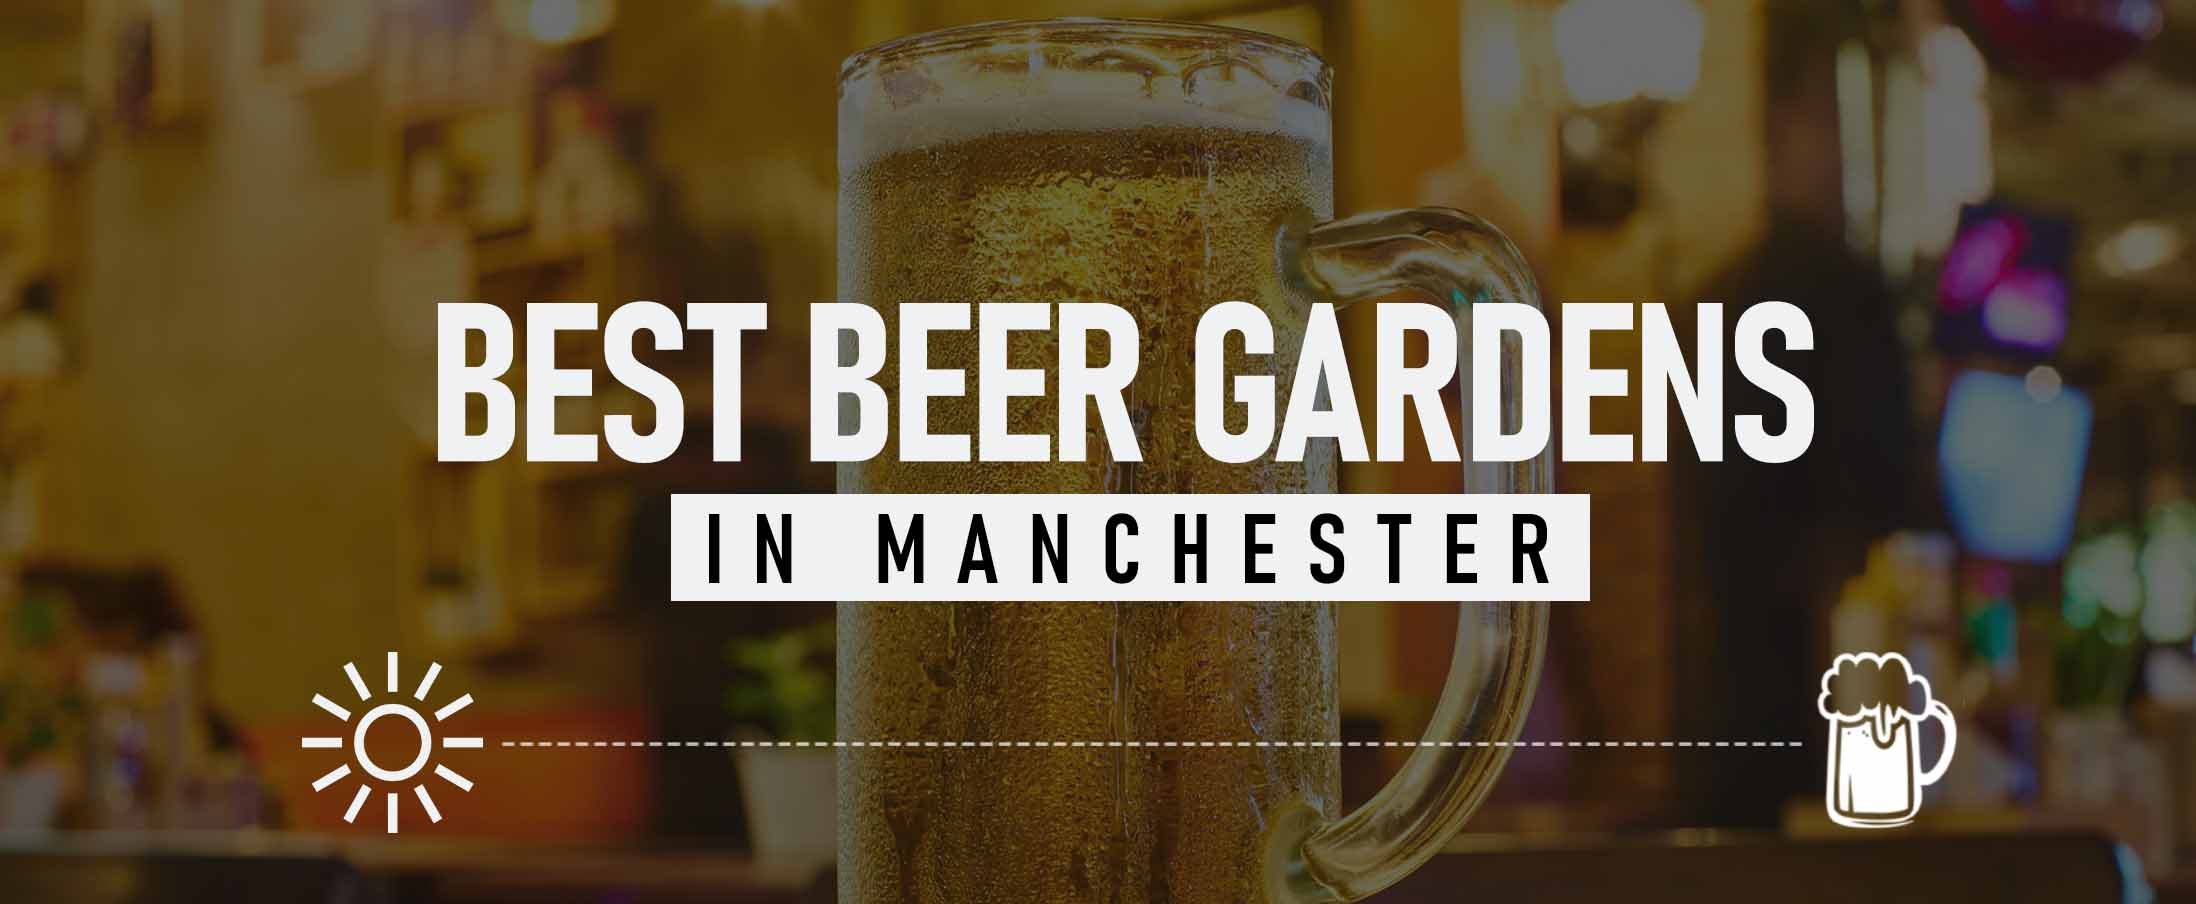 Best Beer Gardens in Manchester